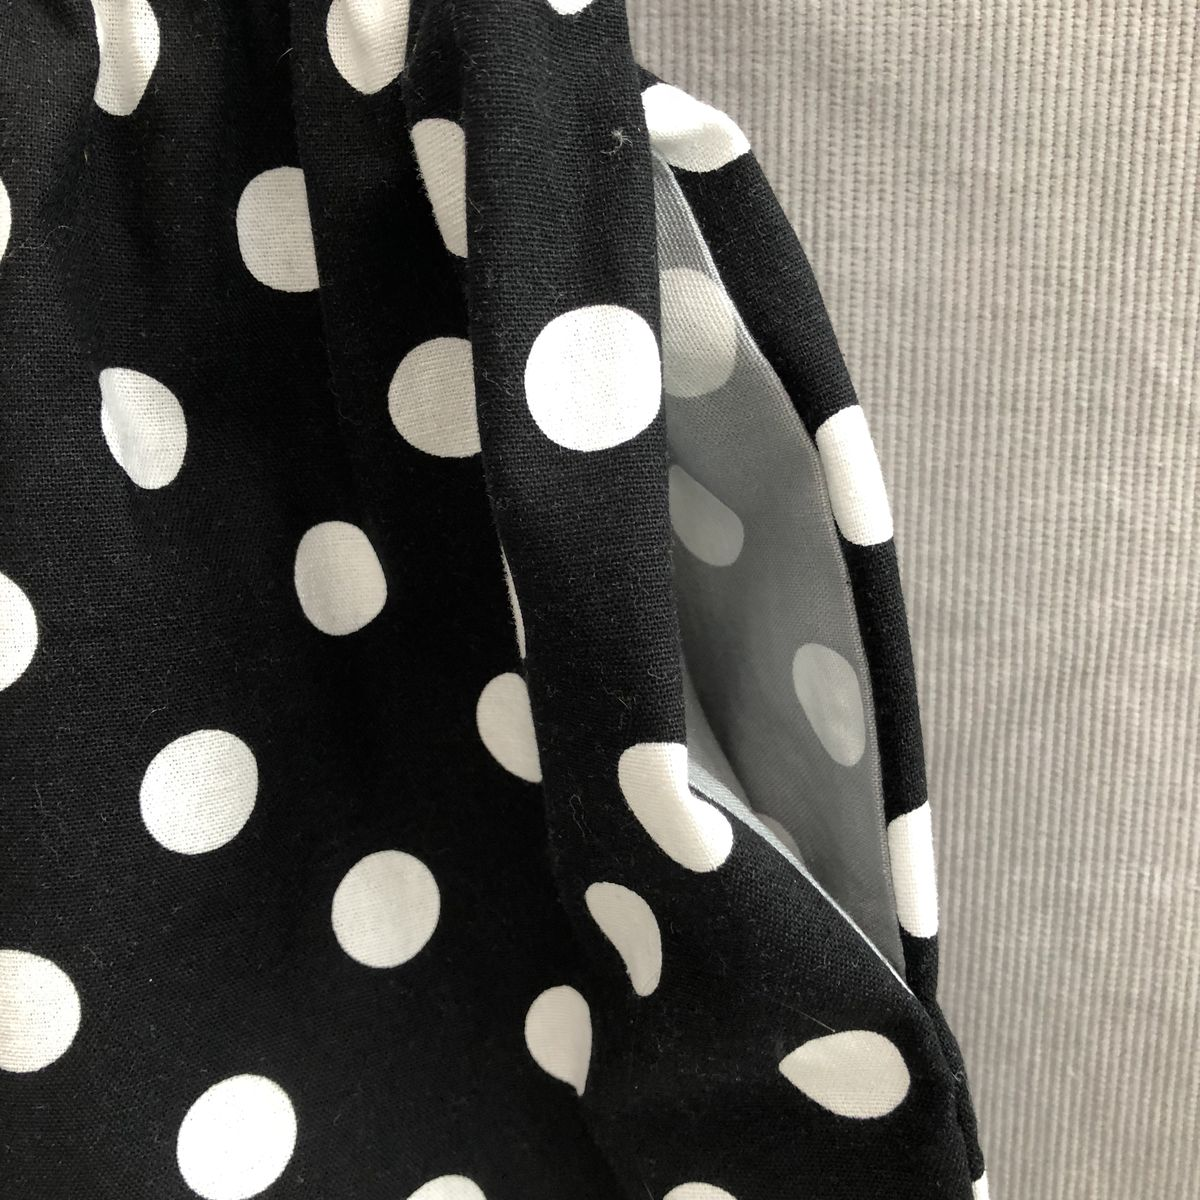 Toddler's cotton skirt, black, grey and white, elasticated waist - product images  of